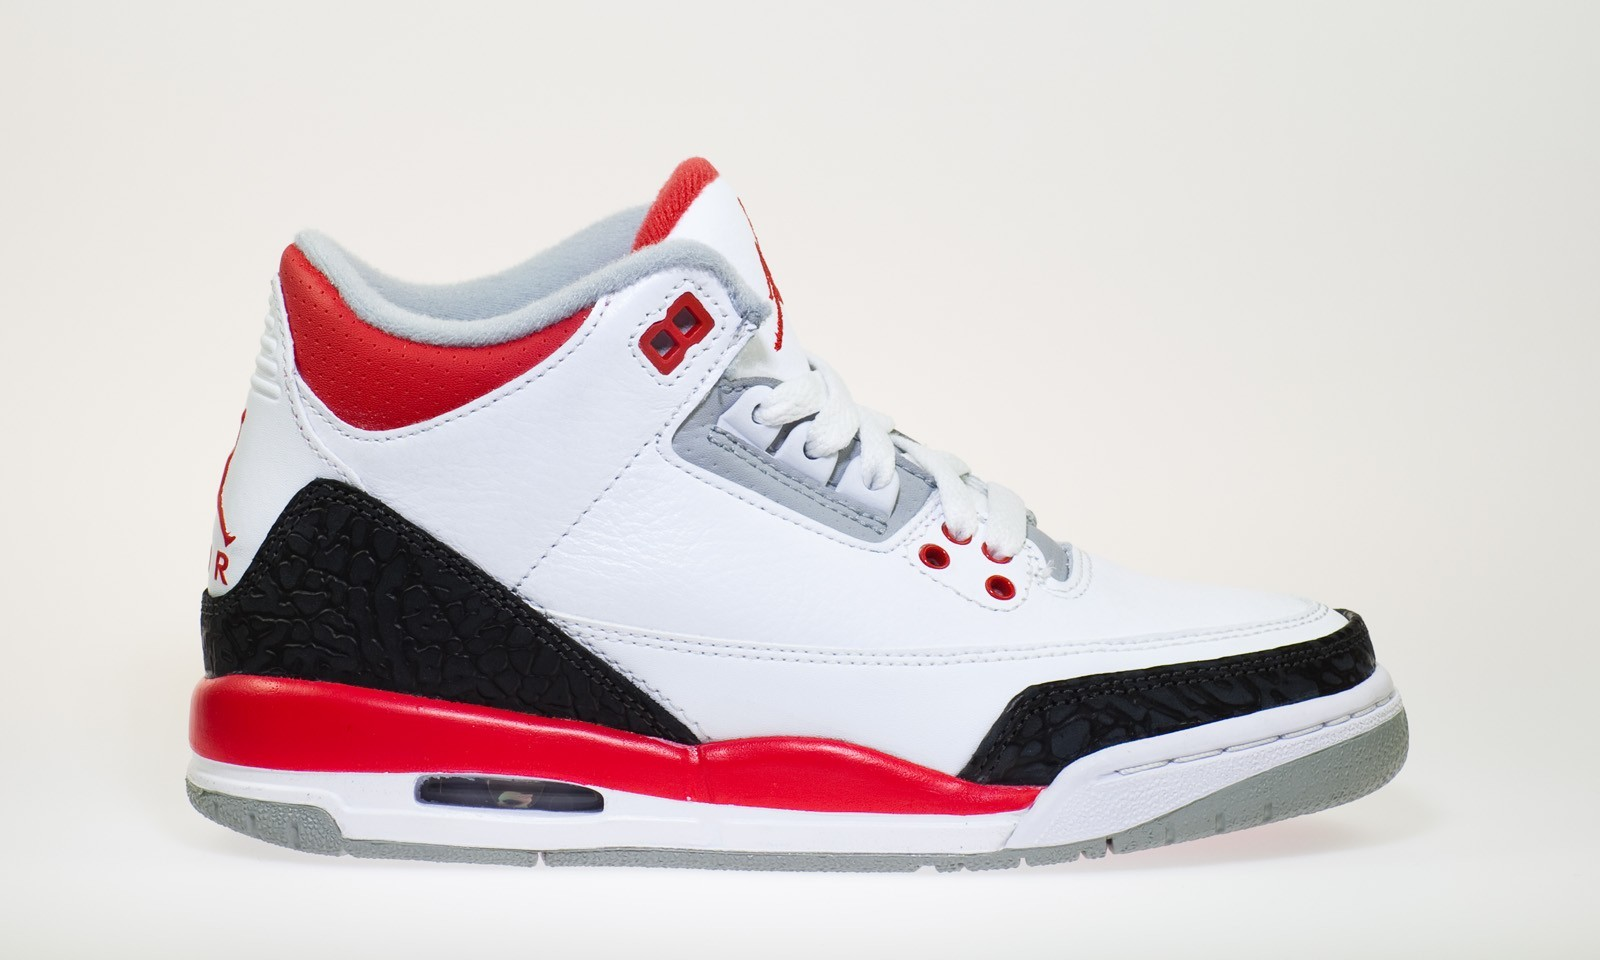 premium selection 1f5e1 2be7b ... best price air jordan retro 3iii white fire red neutral grey black  398614 120 e8ea9 27c02